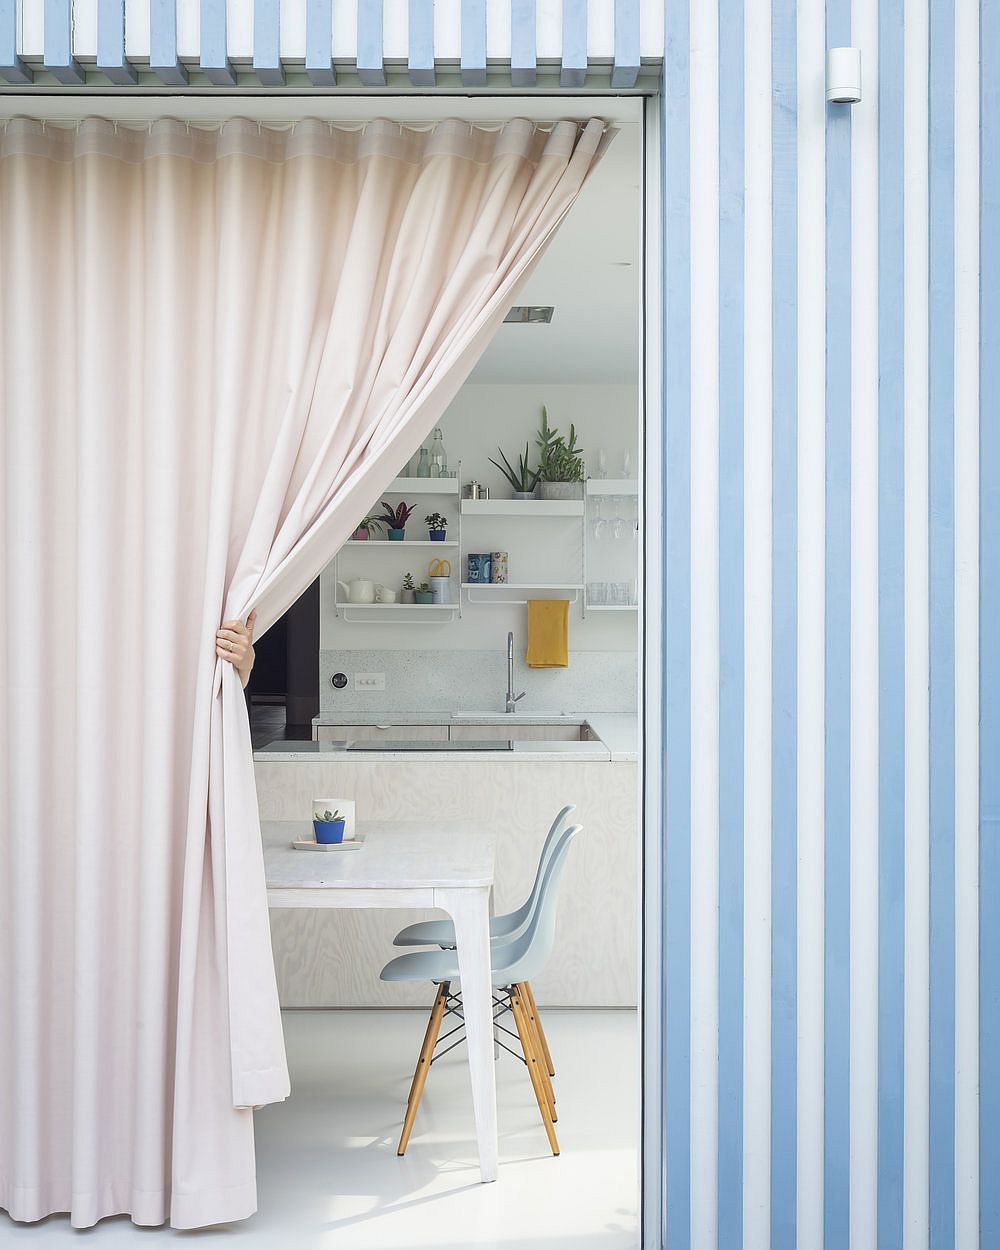 Blue and white striped timber extension along with patel pink curtain